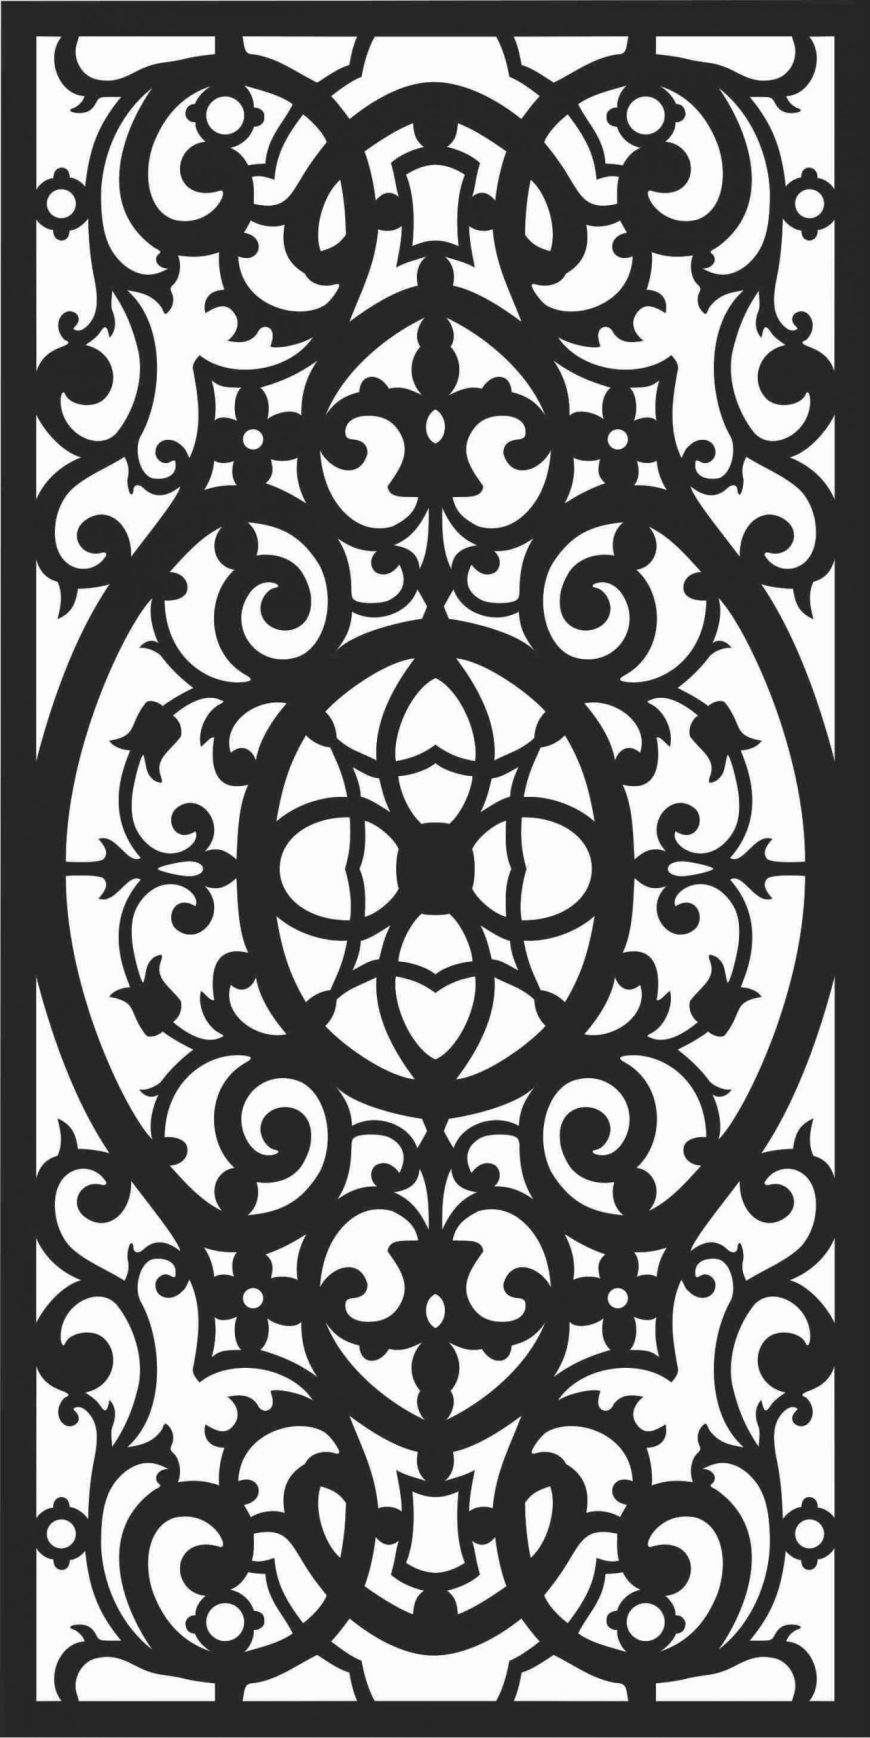 Floral Screen Patterns Design 41 Free DXF File